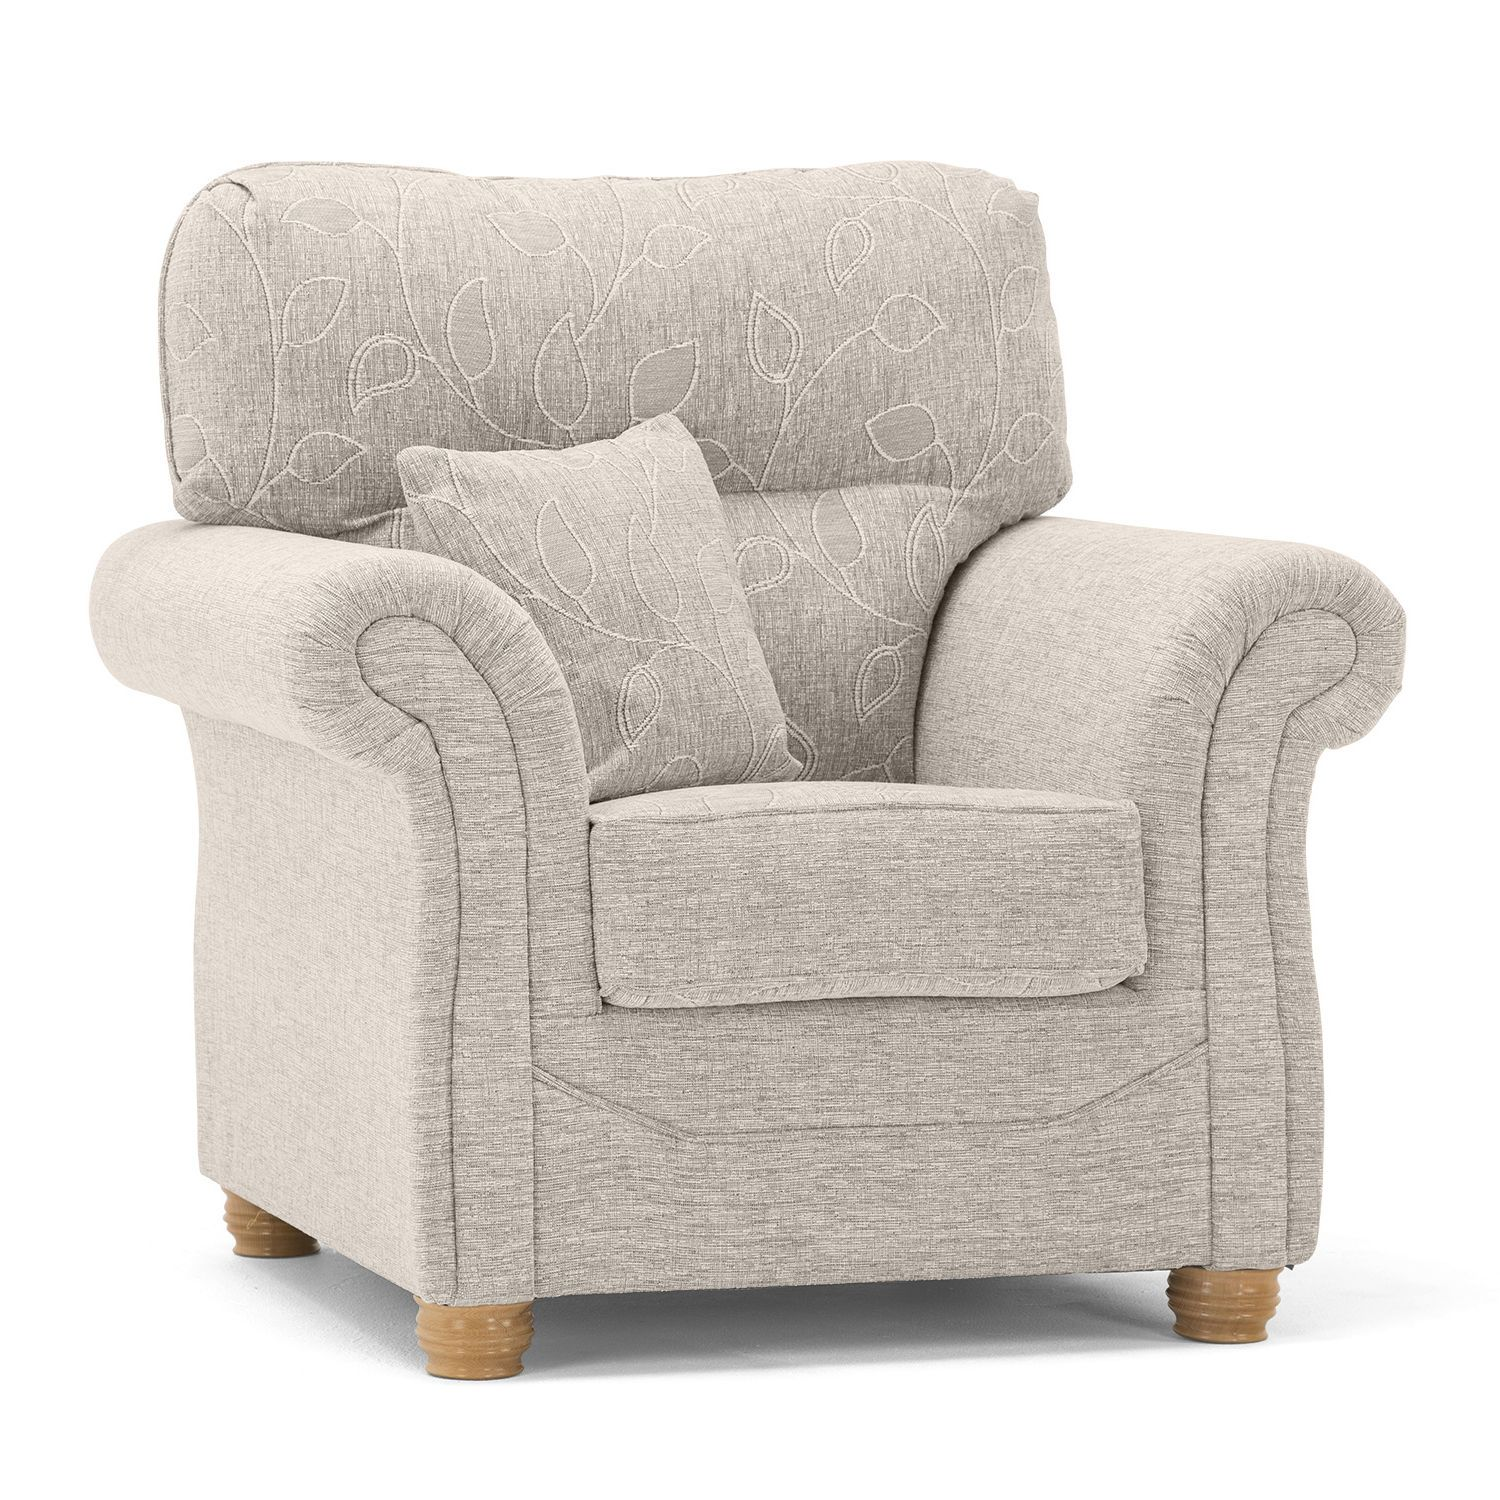 Uk Armchairs Armchairs For Sale Armchairs Cheap Armchairs